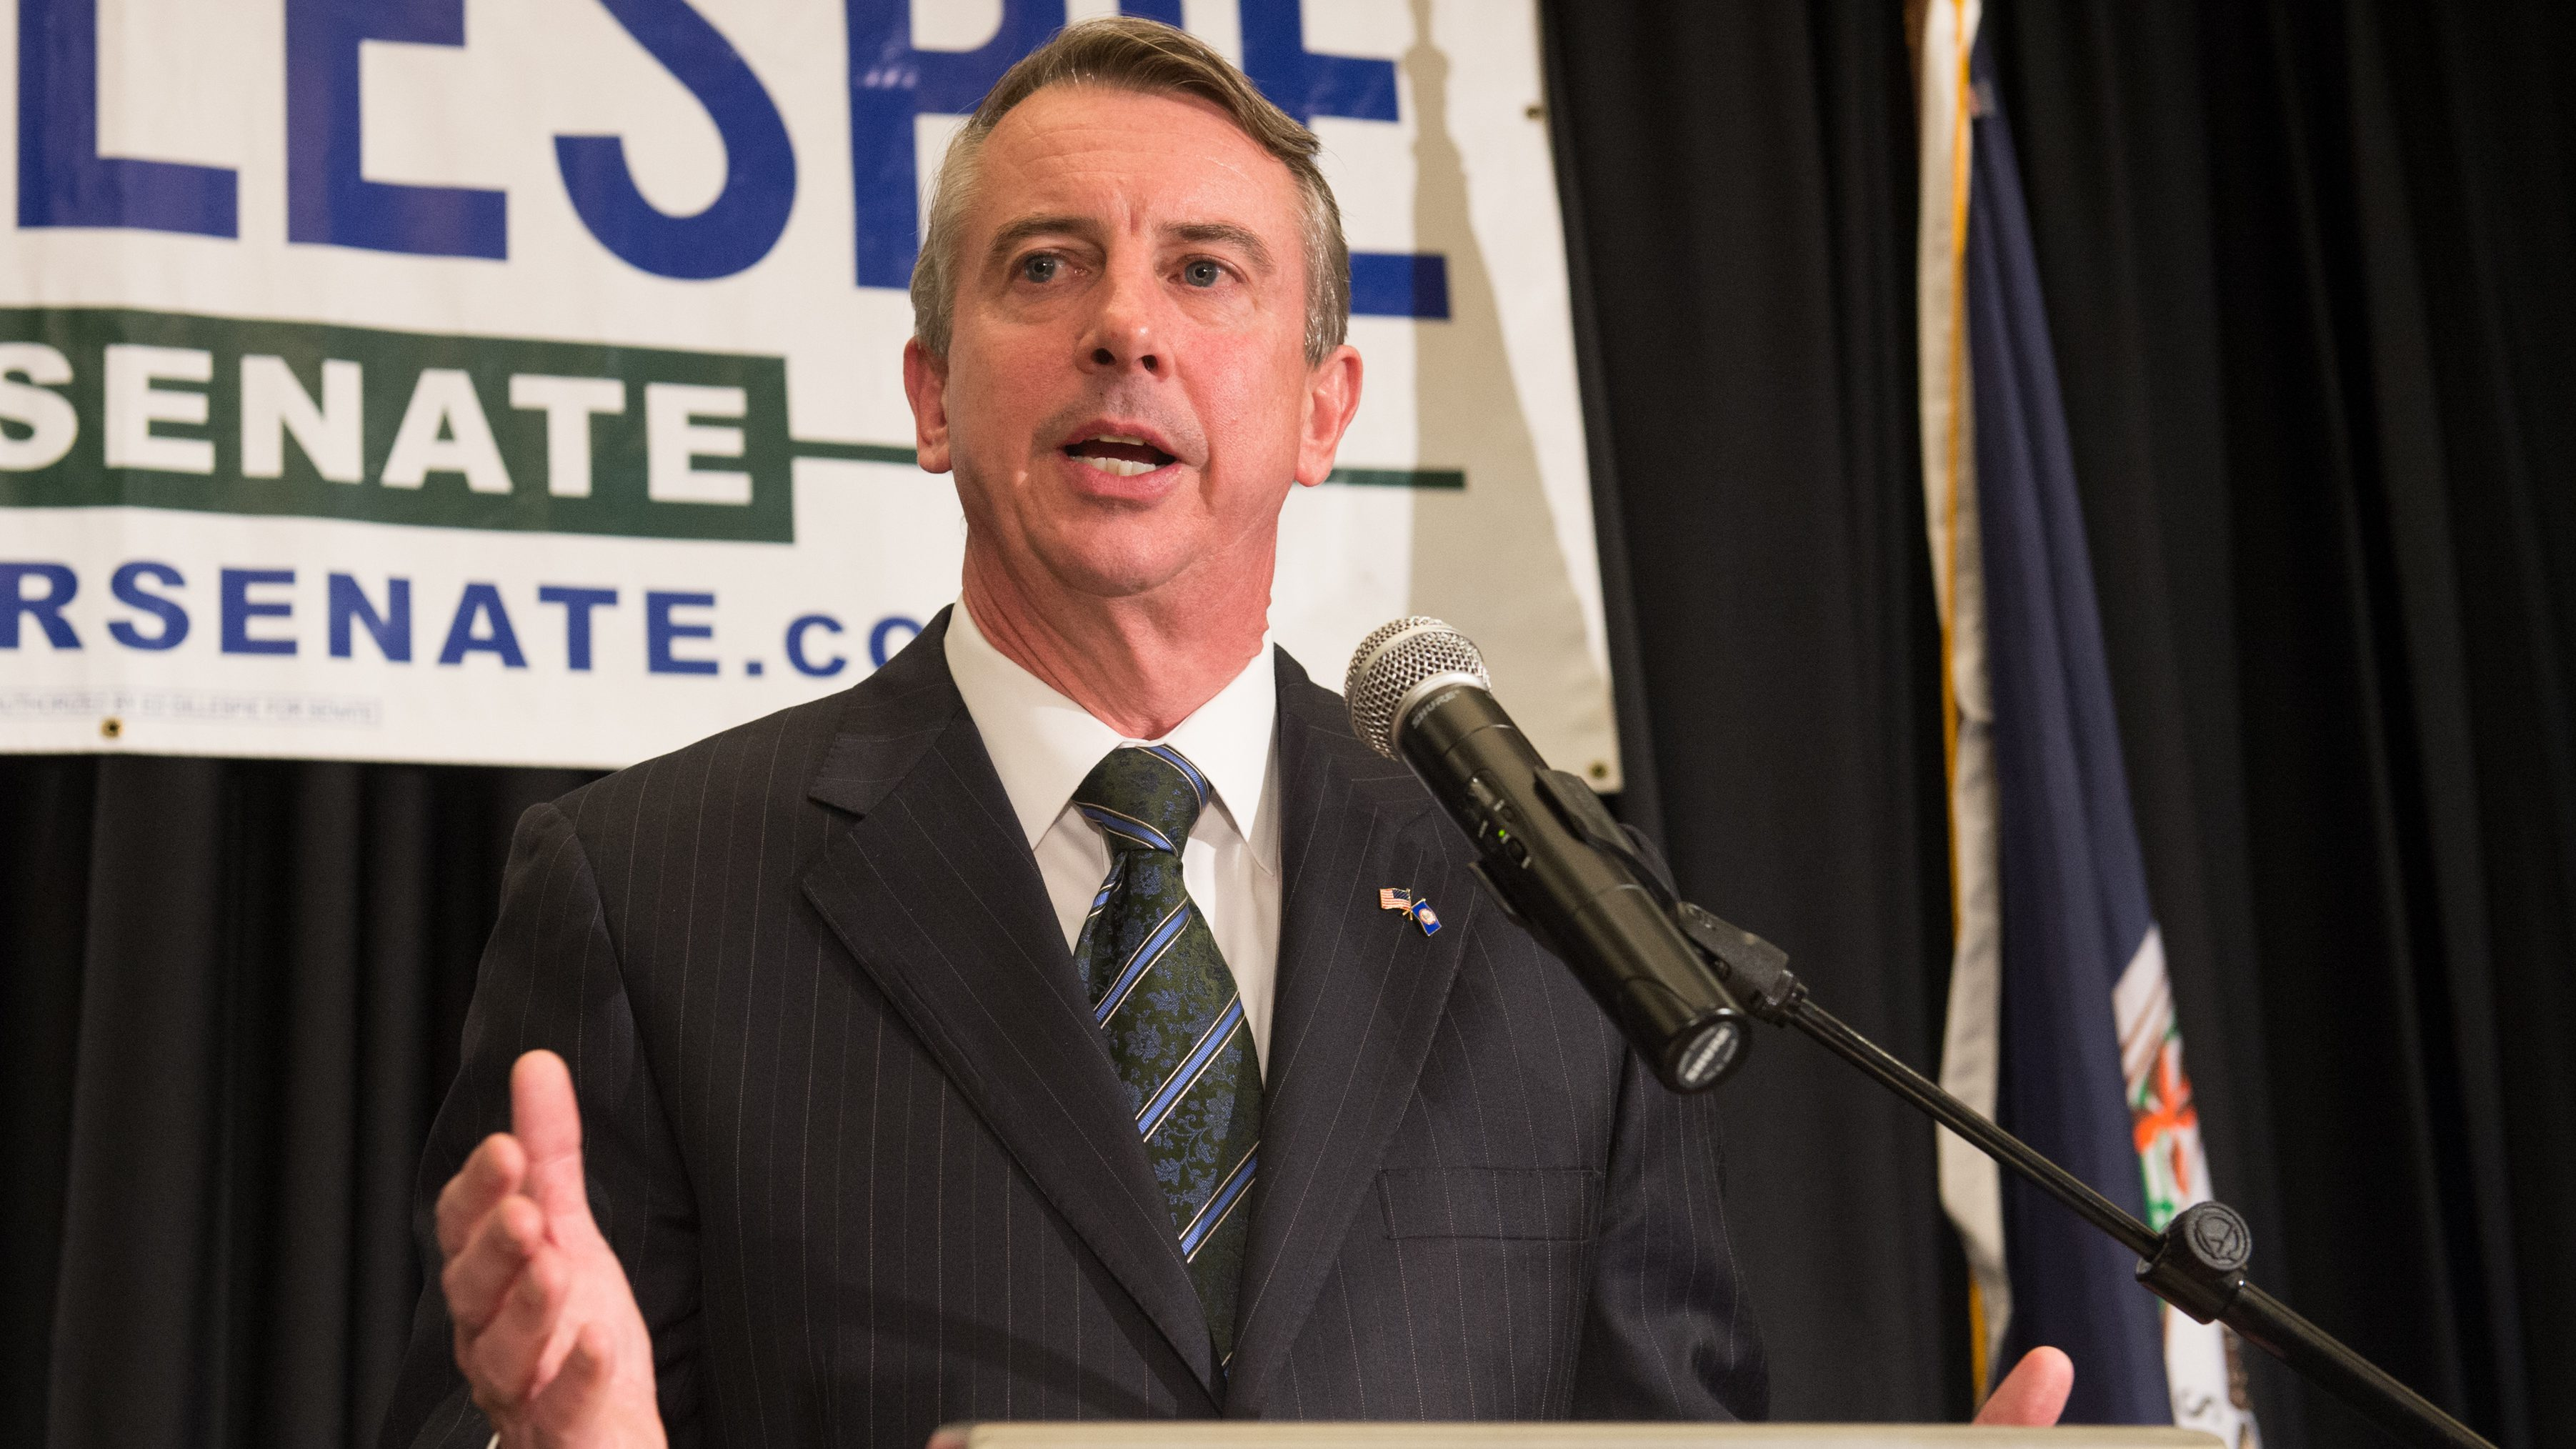 Virginia Senate Race Ed Gillespie